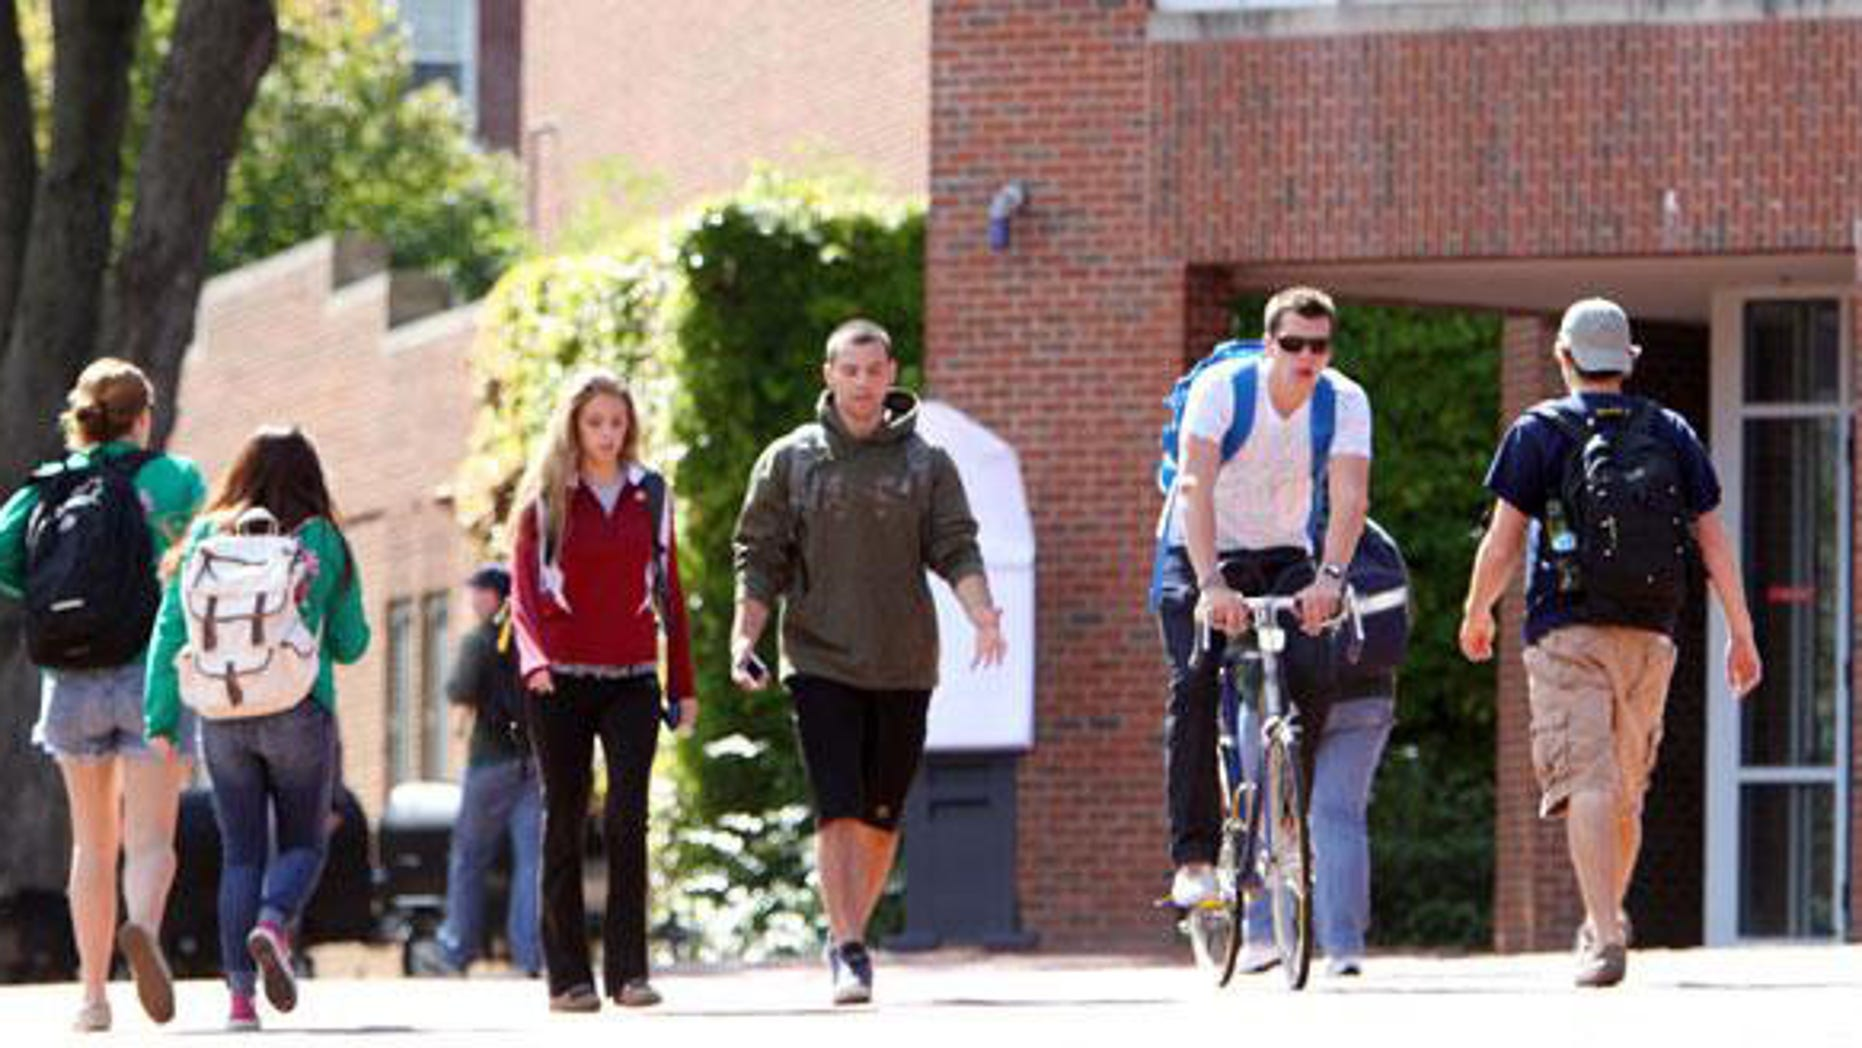 Students are pictured walking through a college campus.